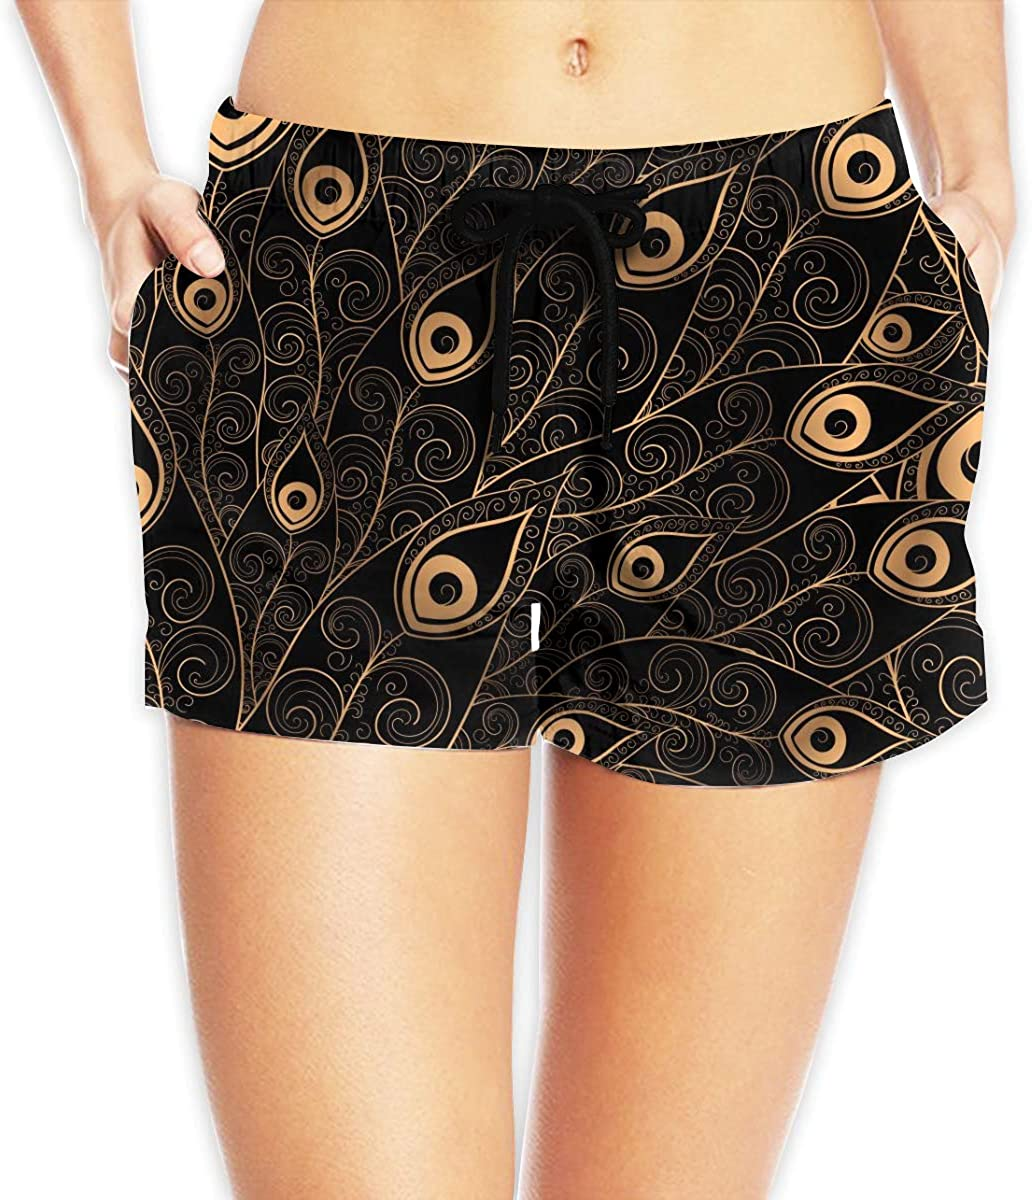 Golden Peacock Feathers Women's Beach Shorts Board Shorts with Pocket Swimming Trunks